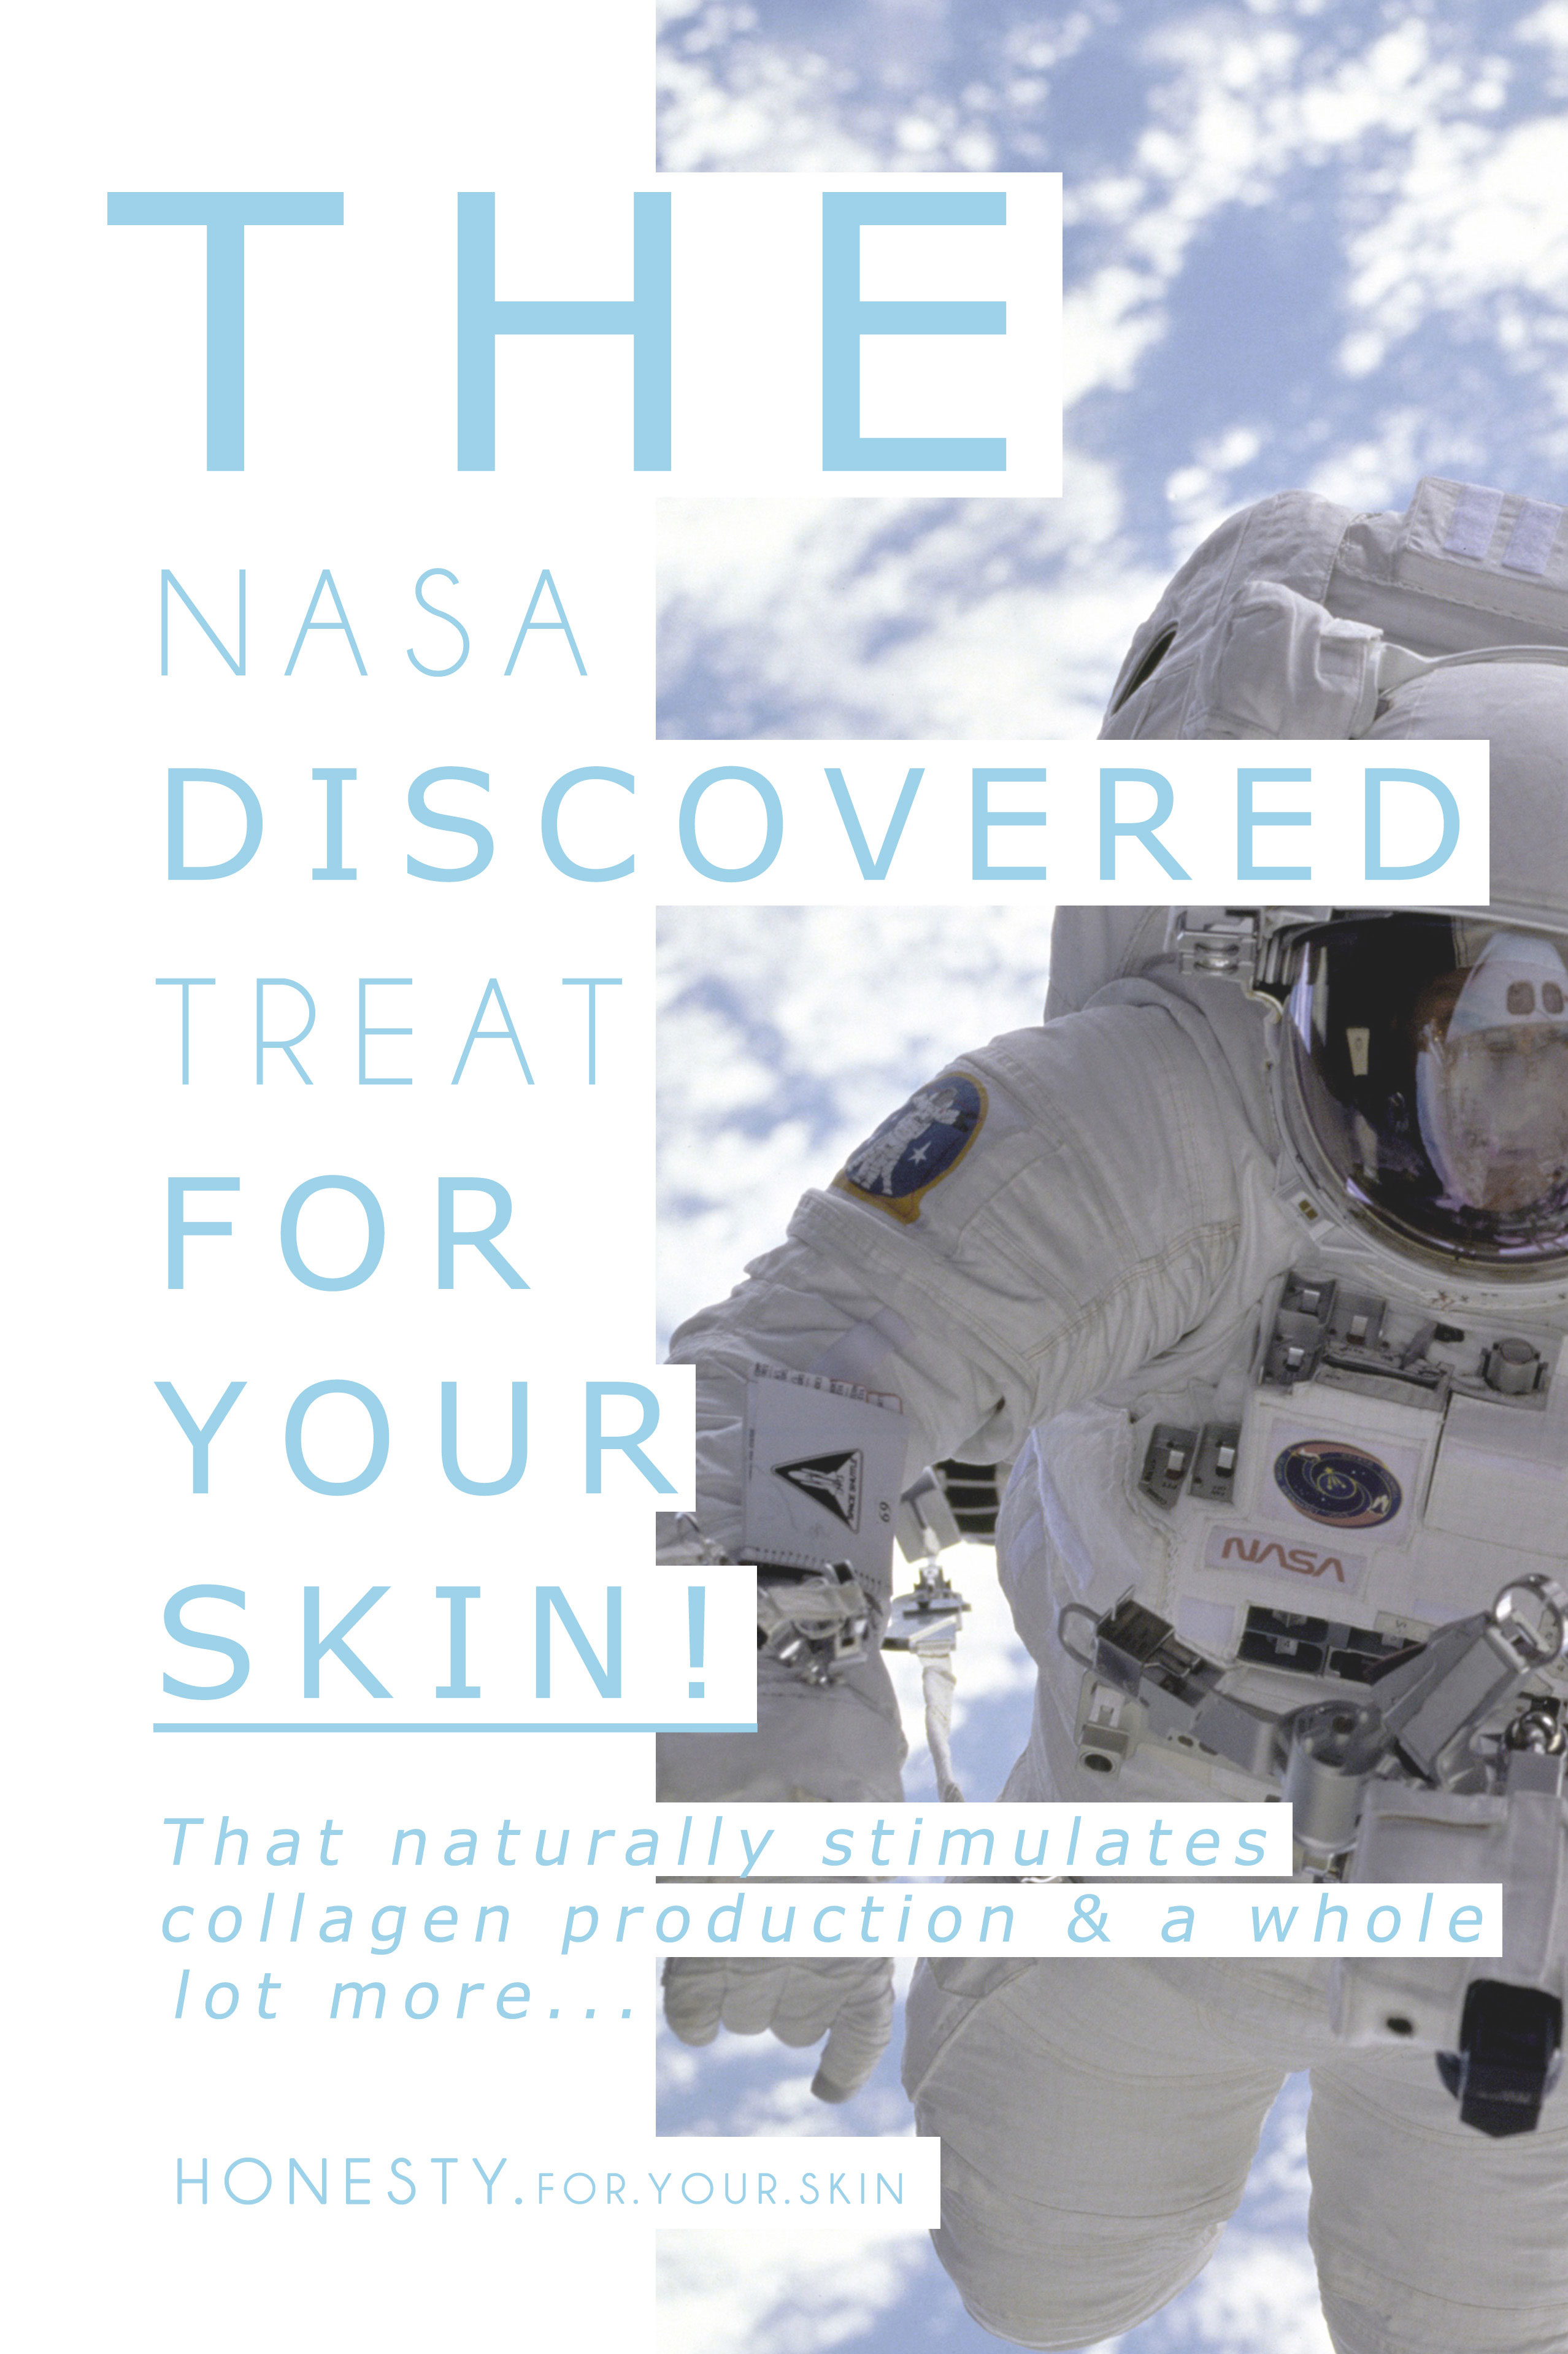 You know there is real science behind something when NASA put their name to it! This is real skincare science. First discovered by NASA for wound healing speediness this skincare treat can help with lots of skin woes from inflammation to aging... http://wp.me/p6LuQS-zG